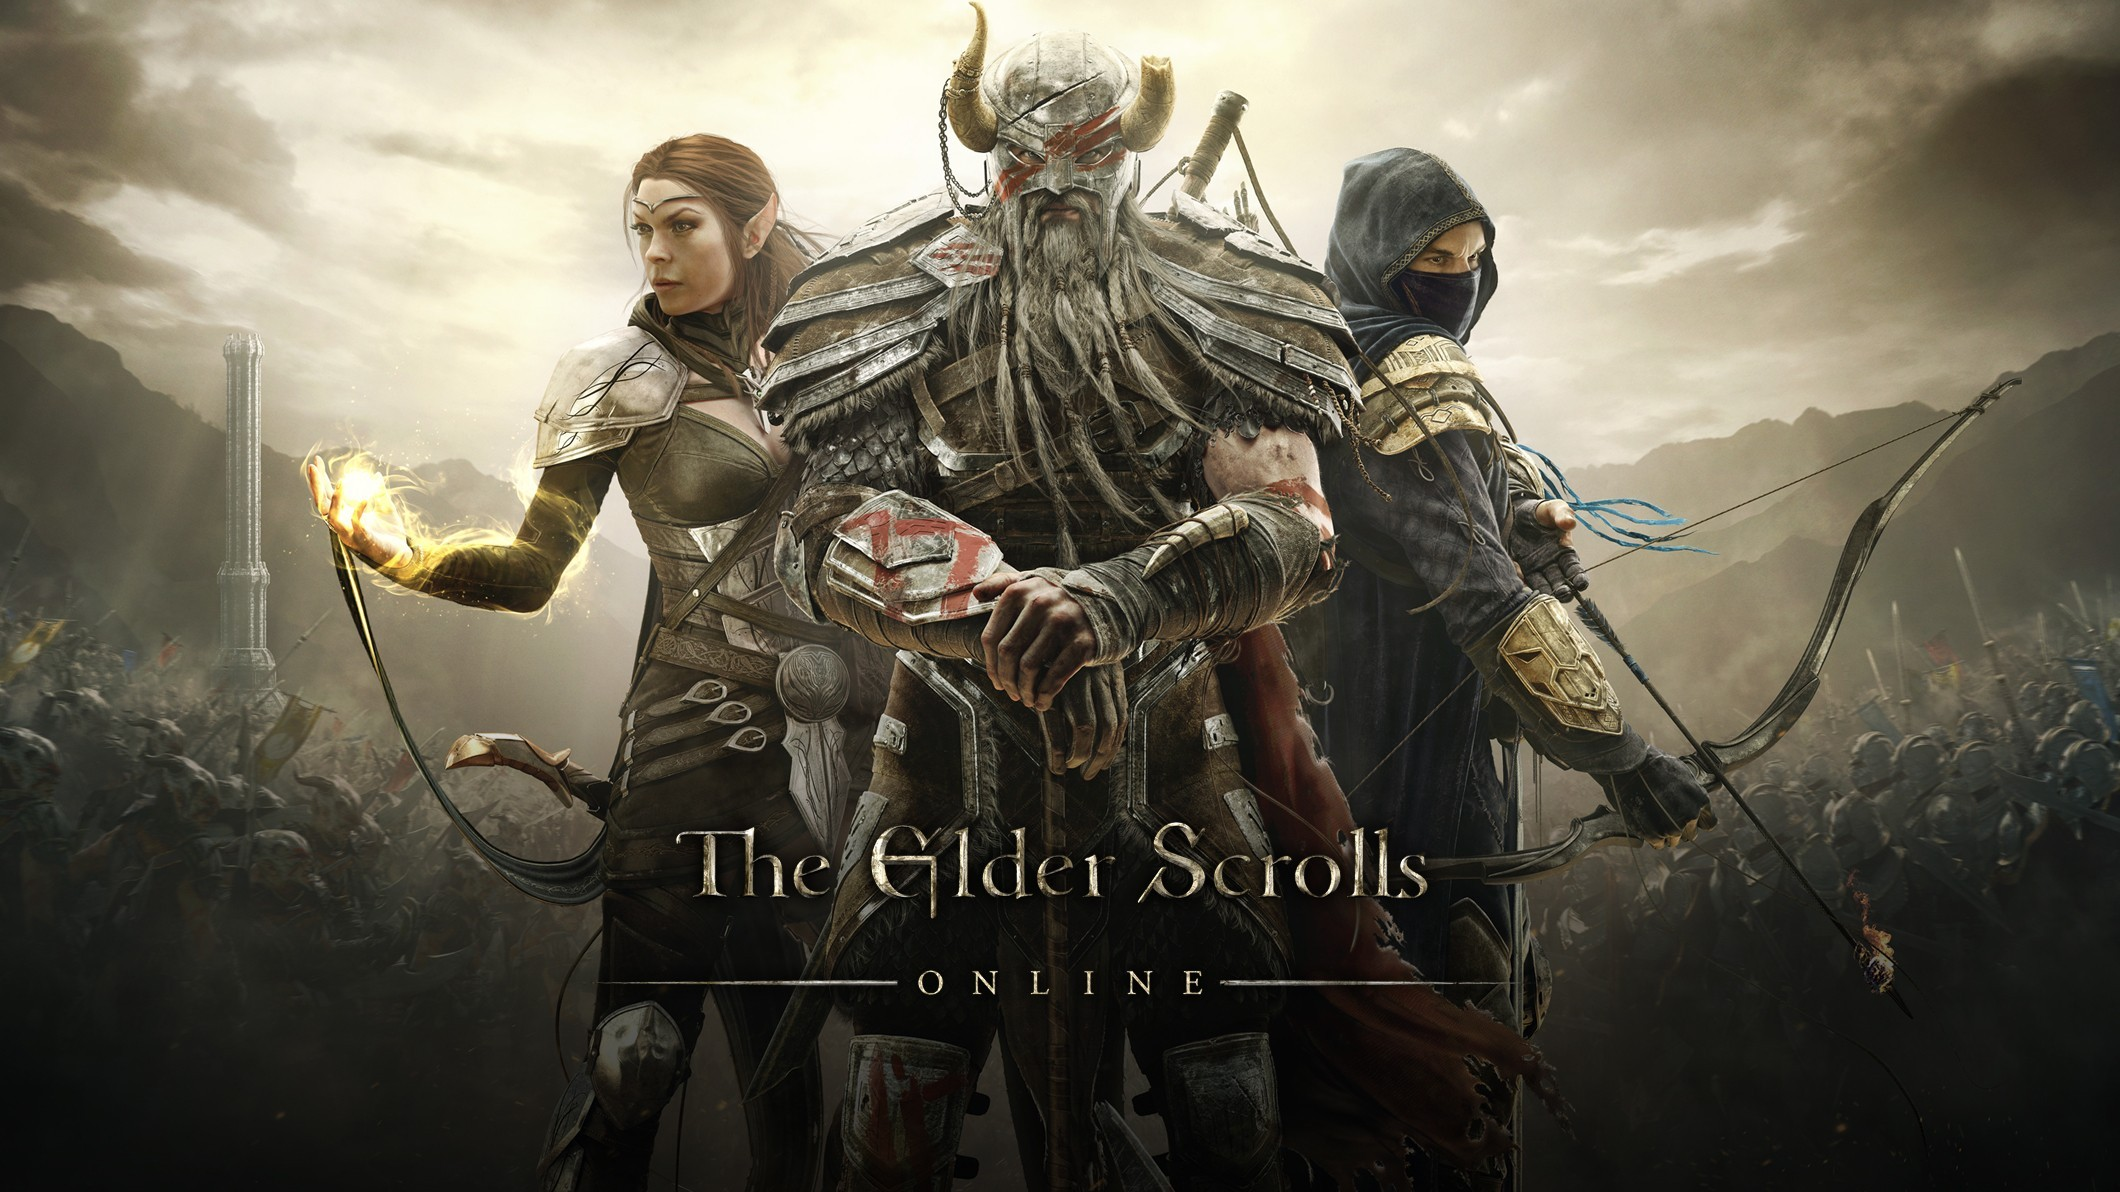 The Elder Scrolls Online Devs Answer Community Questions About Upcoming Transition 471233 2